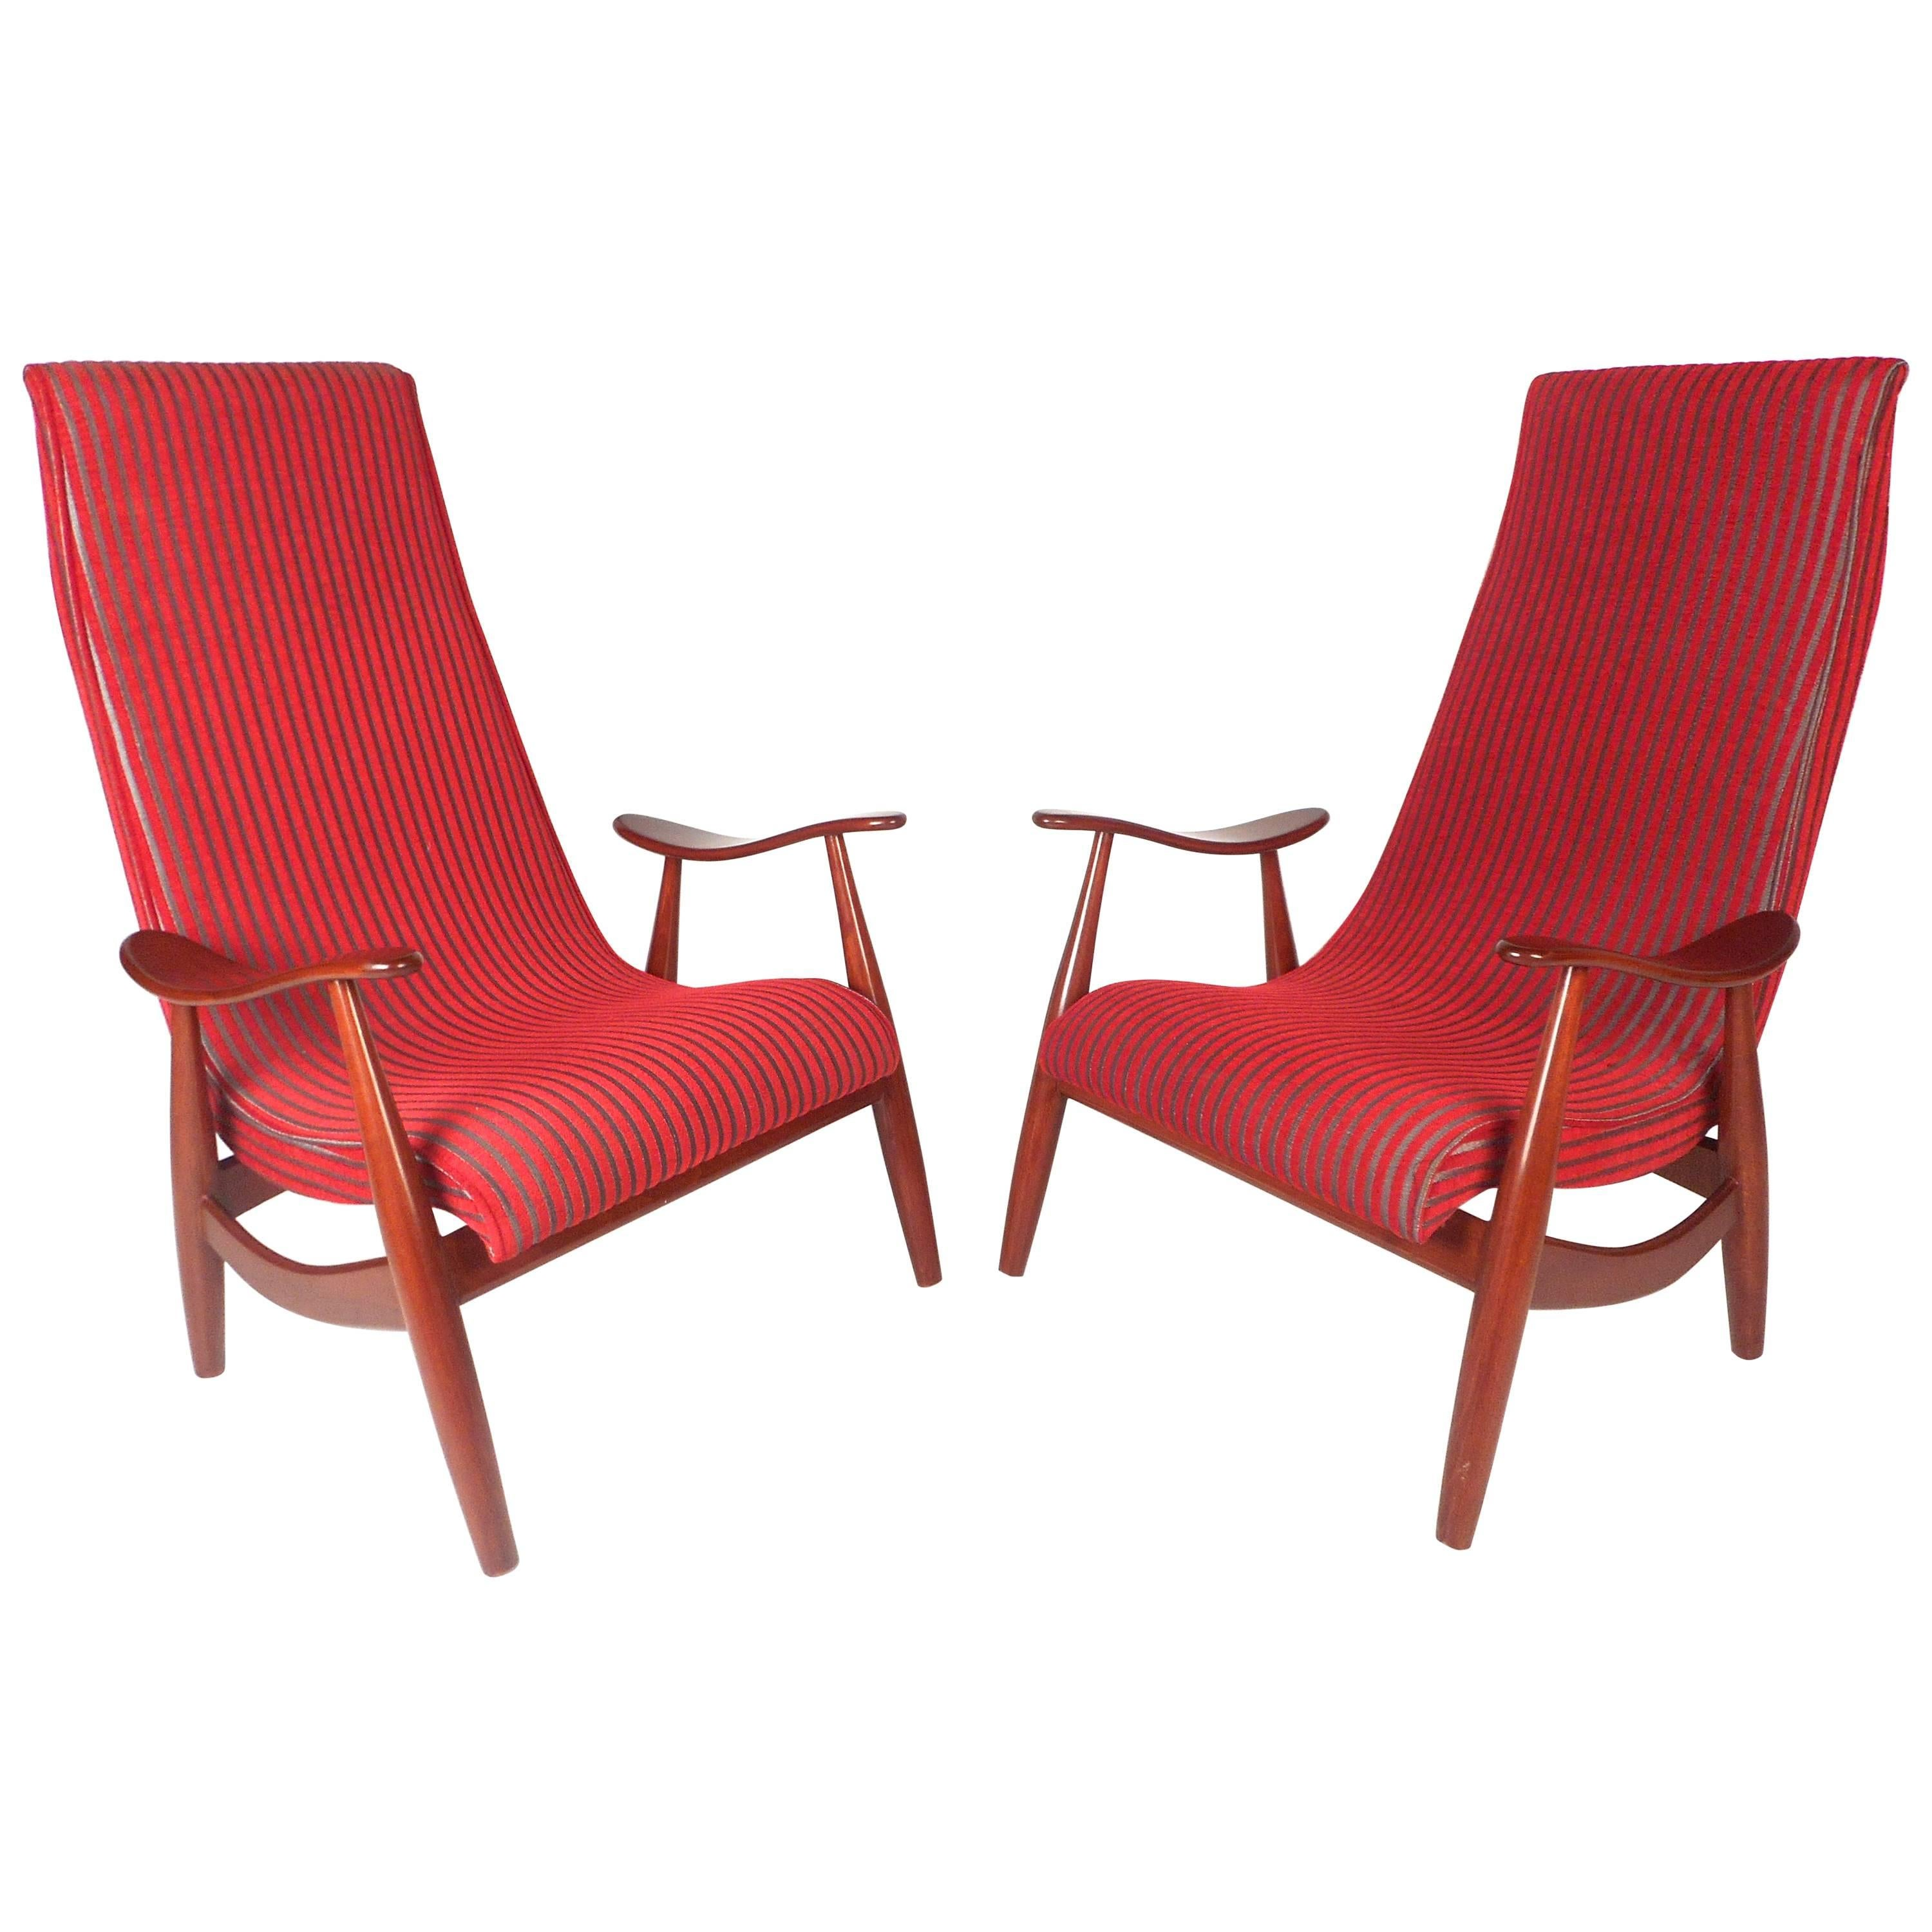 Pair of Mid-Century Modern High Back Walnut Lounge Chairs